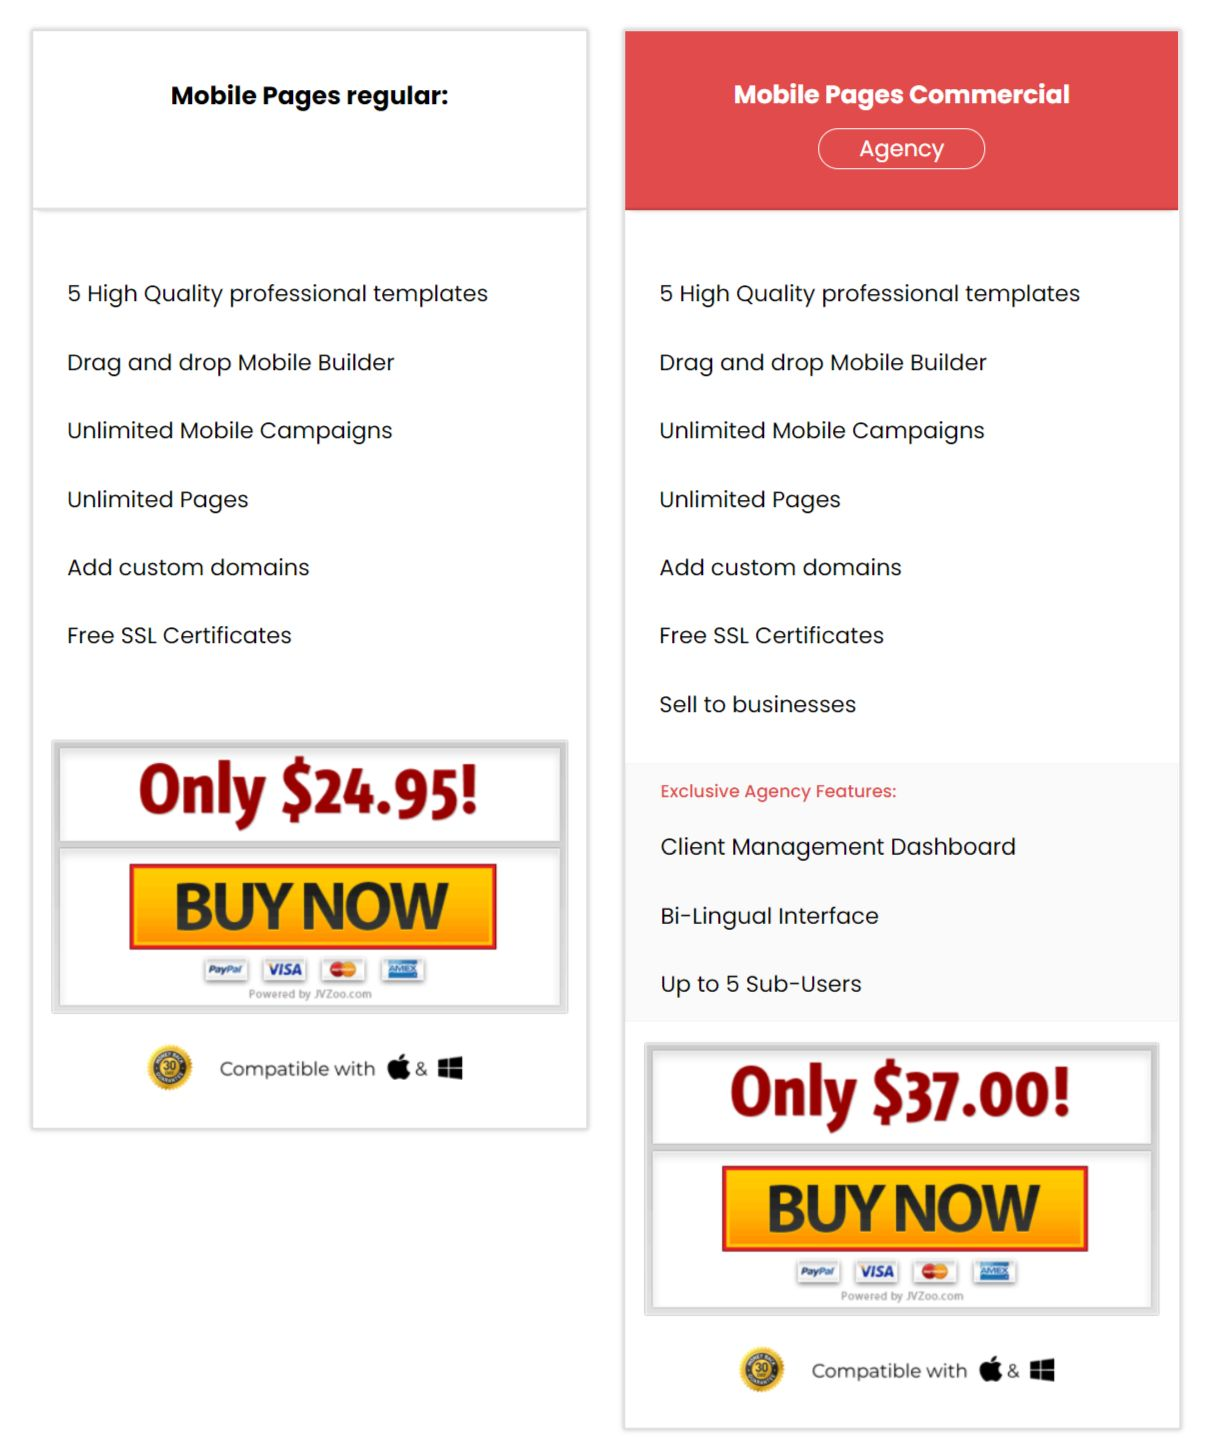 Mobile-Pages-Agency-Price